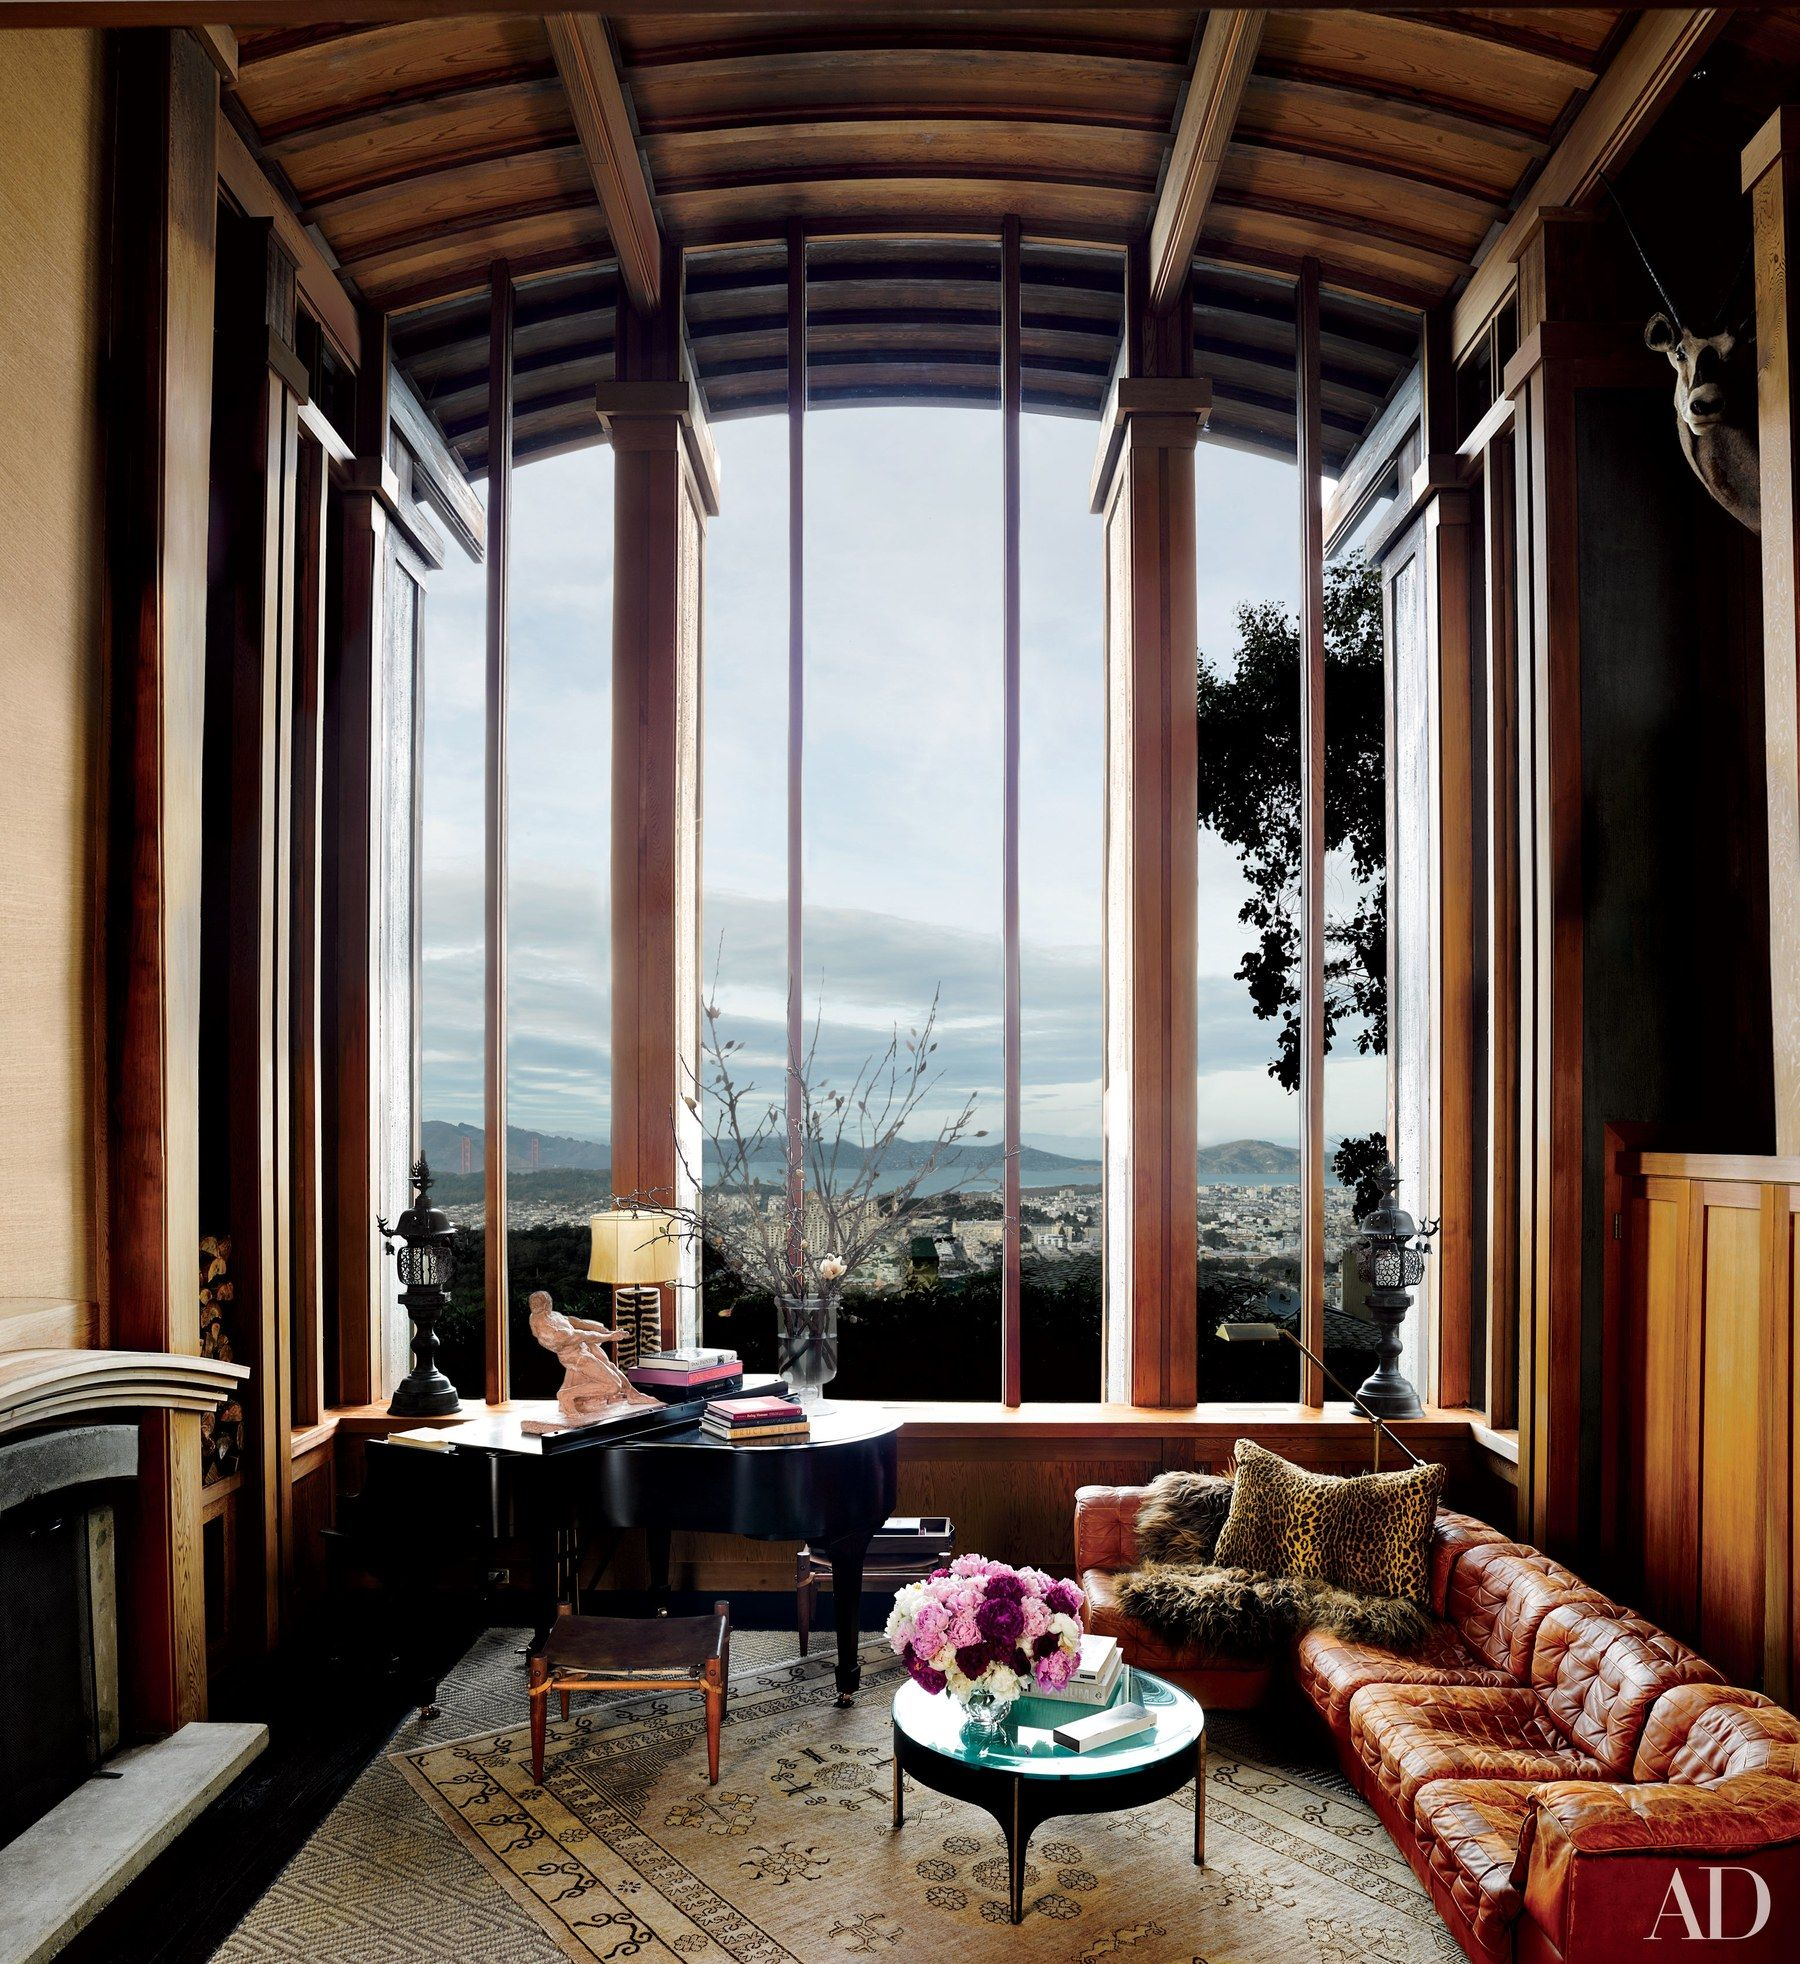 This San Francisco residence enjoys expansive city views from the 27-foot-tall window in the great room. Ken Fulk furnished the space with a vintage de Sede sectional sofa and a pillow in a Ralph Lauren Home leopard print; the 1910 Steinway was originally owned by pianist Alfred Cortot.